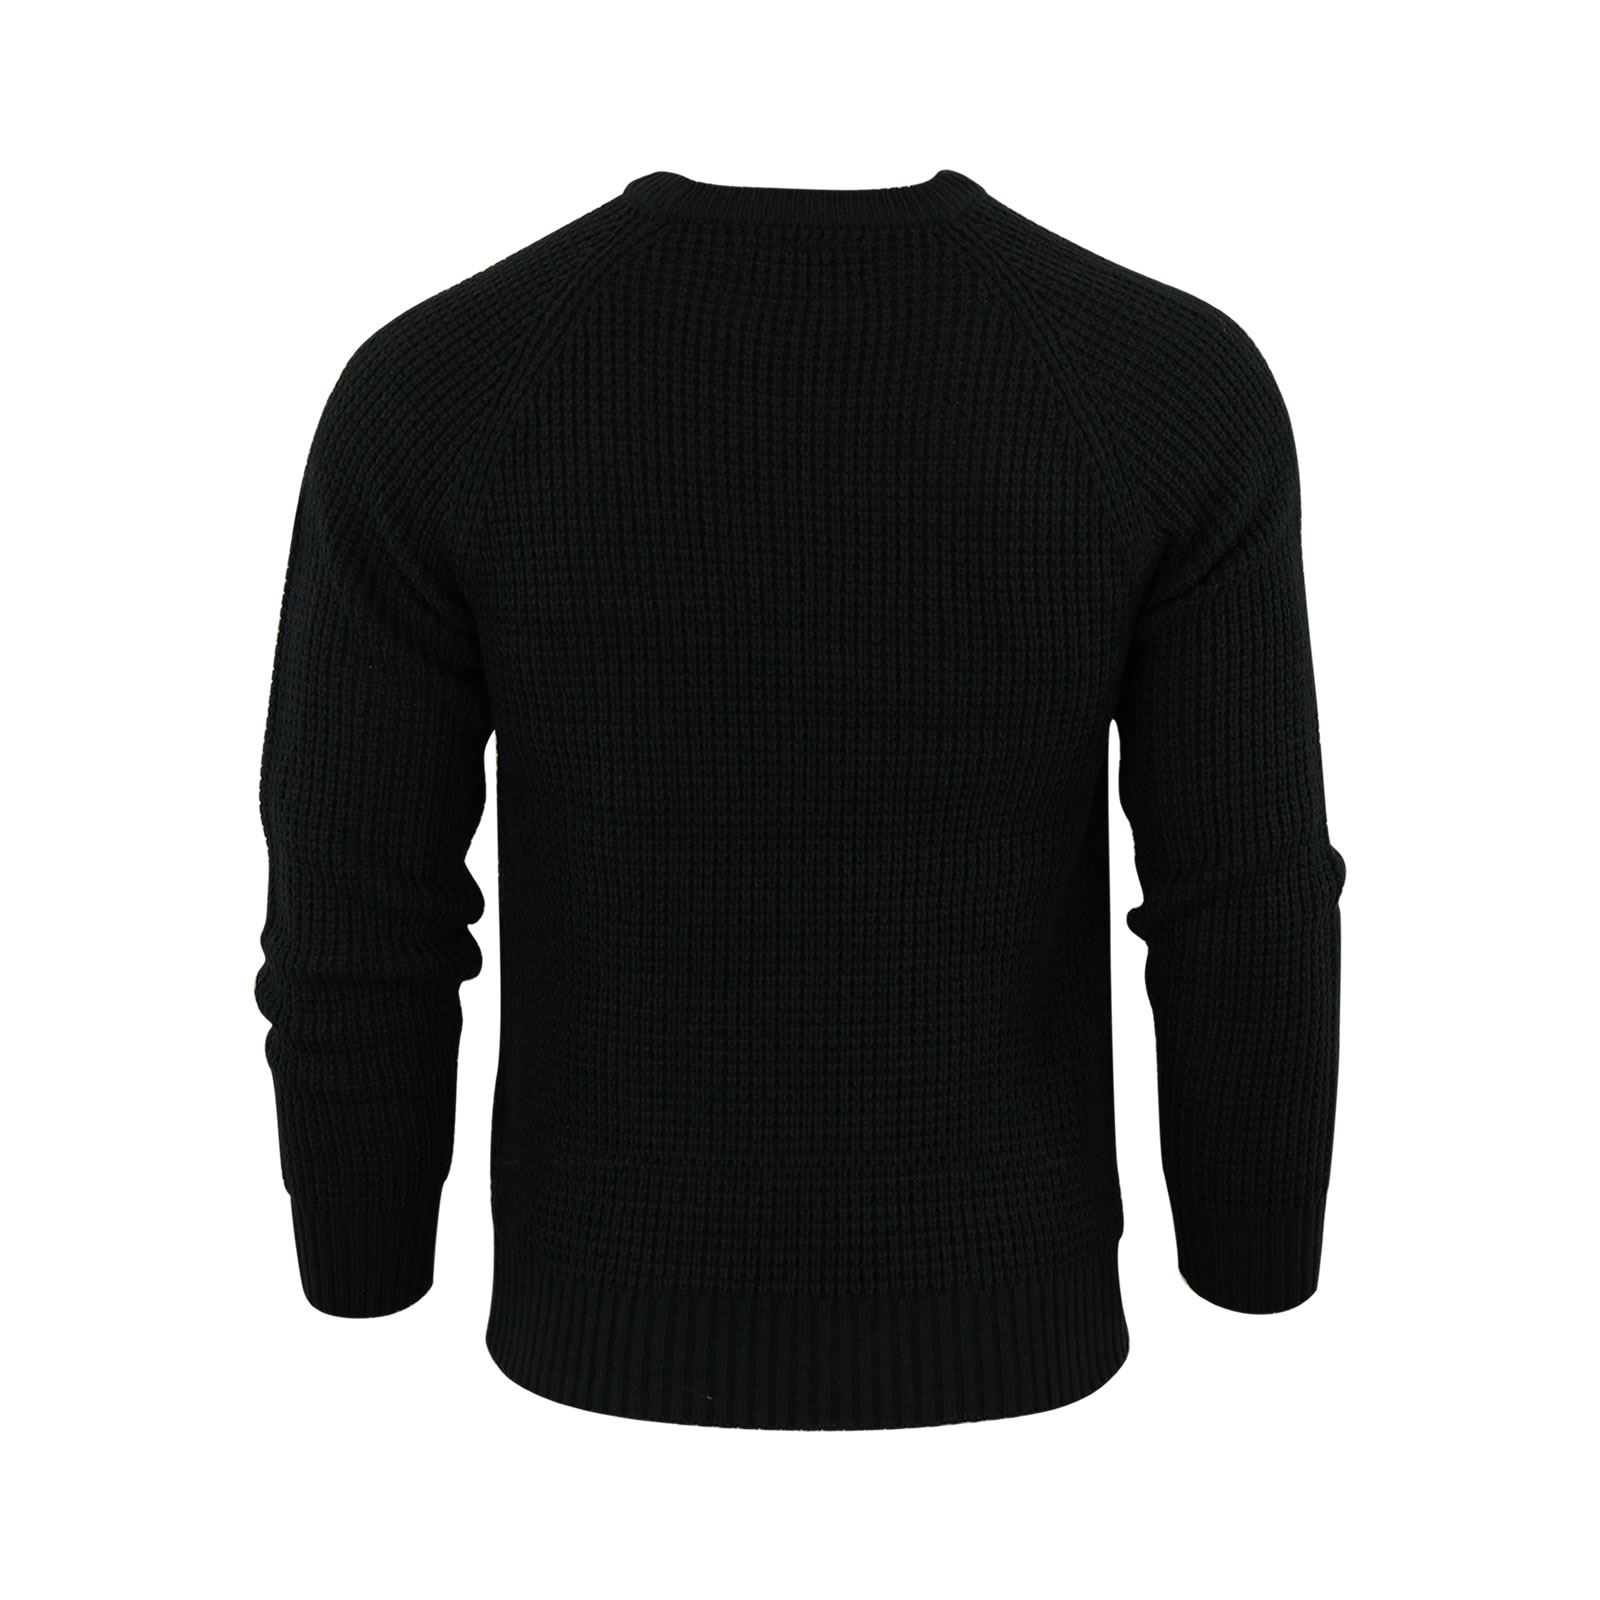 Mens-Jumper-Crosshatch-General-Waffle-Knitted-Crew-Neck-Wool-Mix-Sweater thumbnail 8